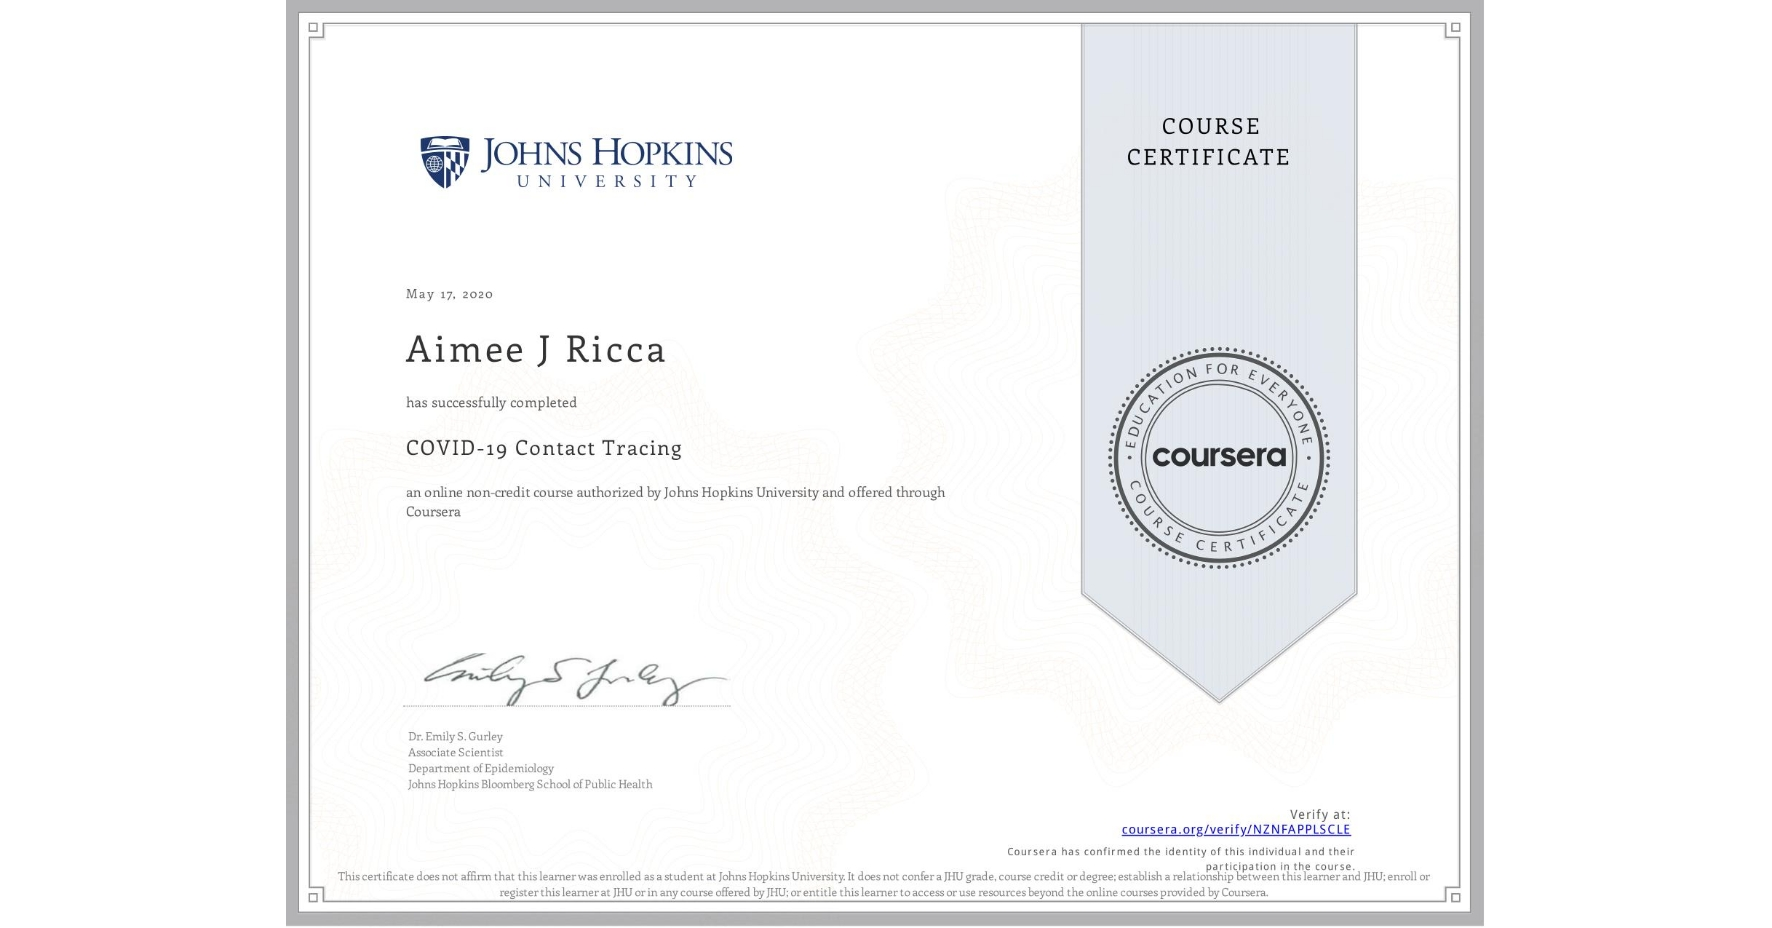 View certificate for Aimee J Ricca, COVID-19 Contact Tracing, an online non-credit course authorized by Johns Hopkins University and offered through Coursera